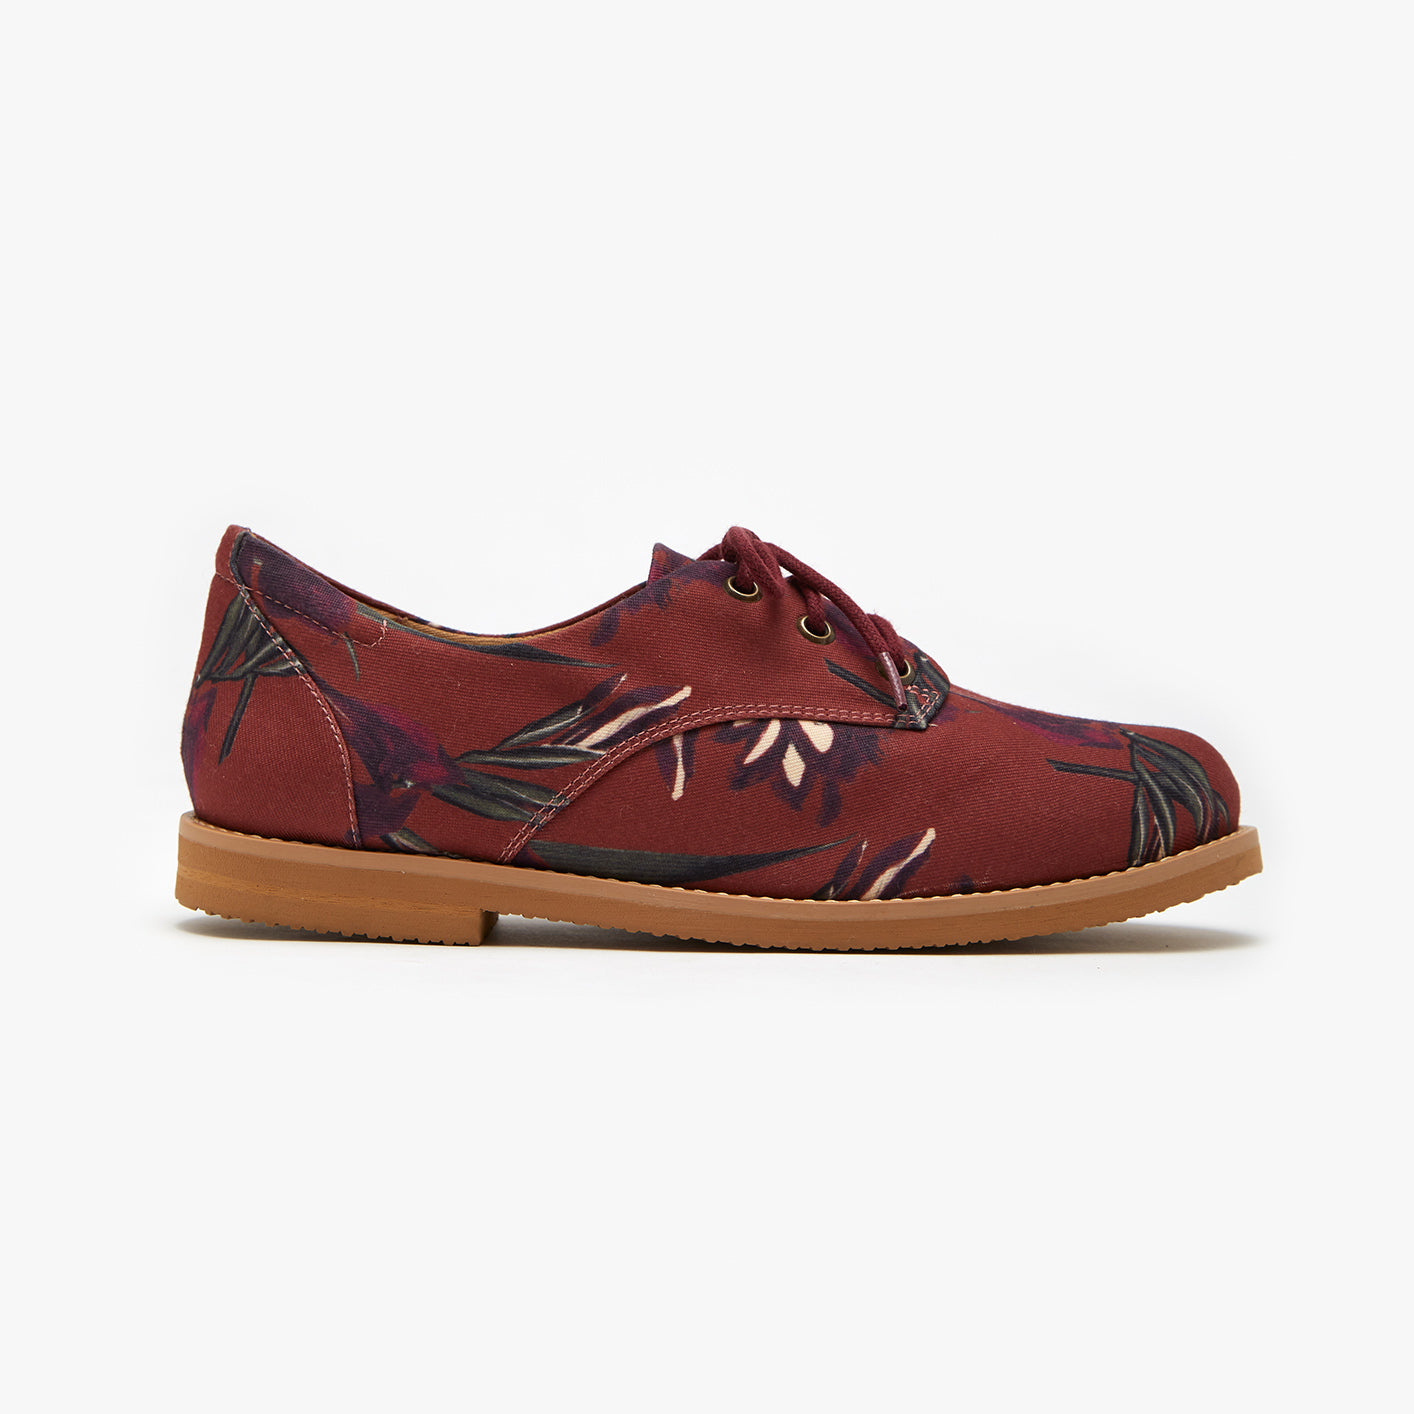 JULIANA OXFORD - Insecta Shoes Brasil